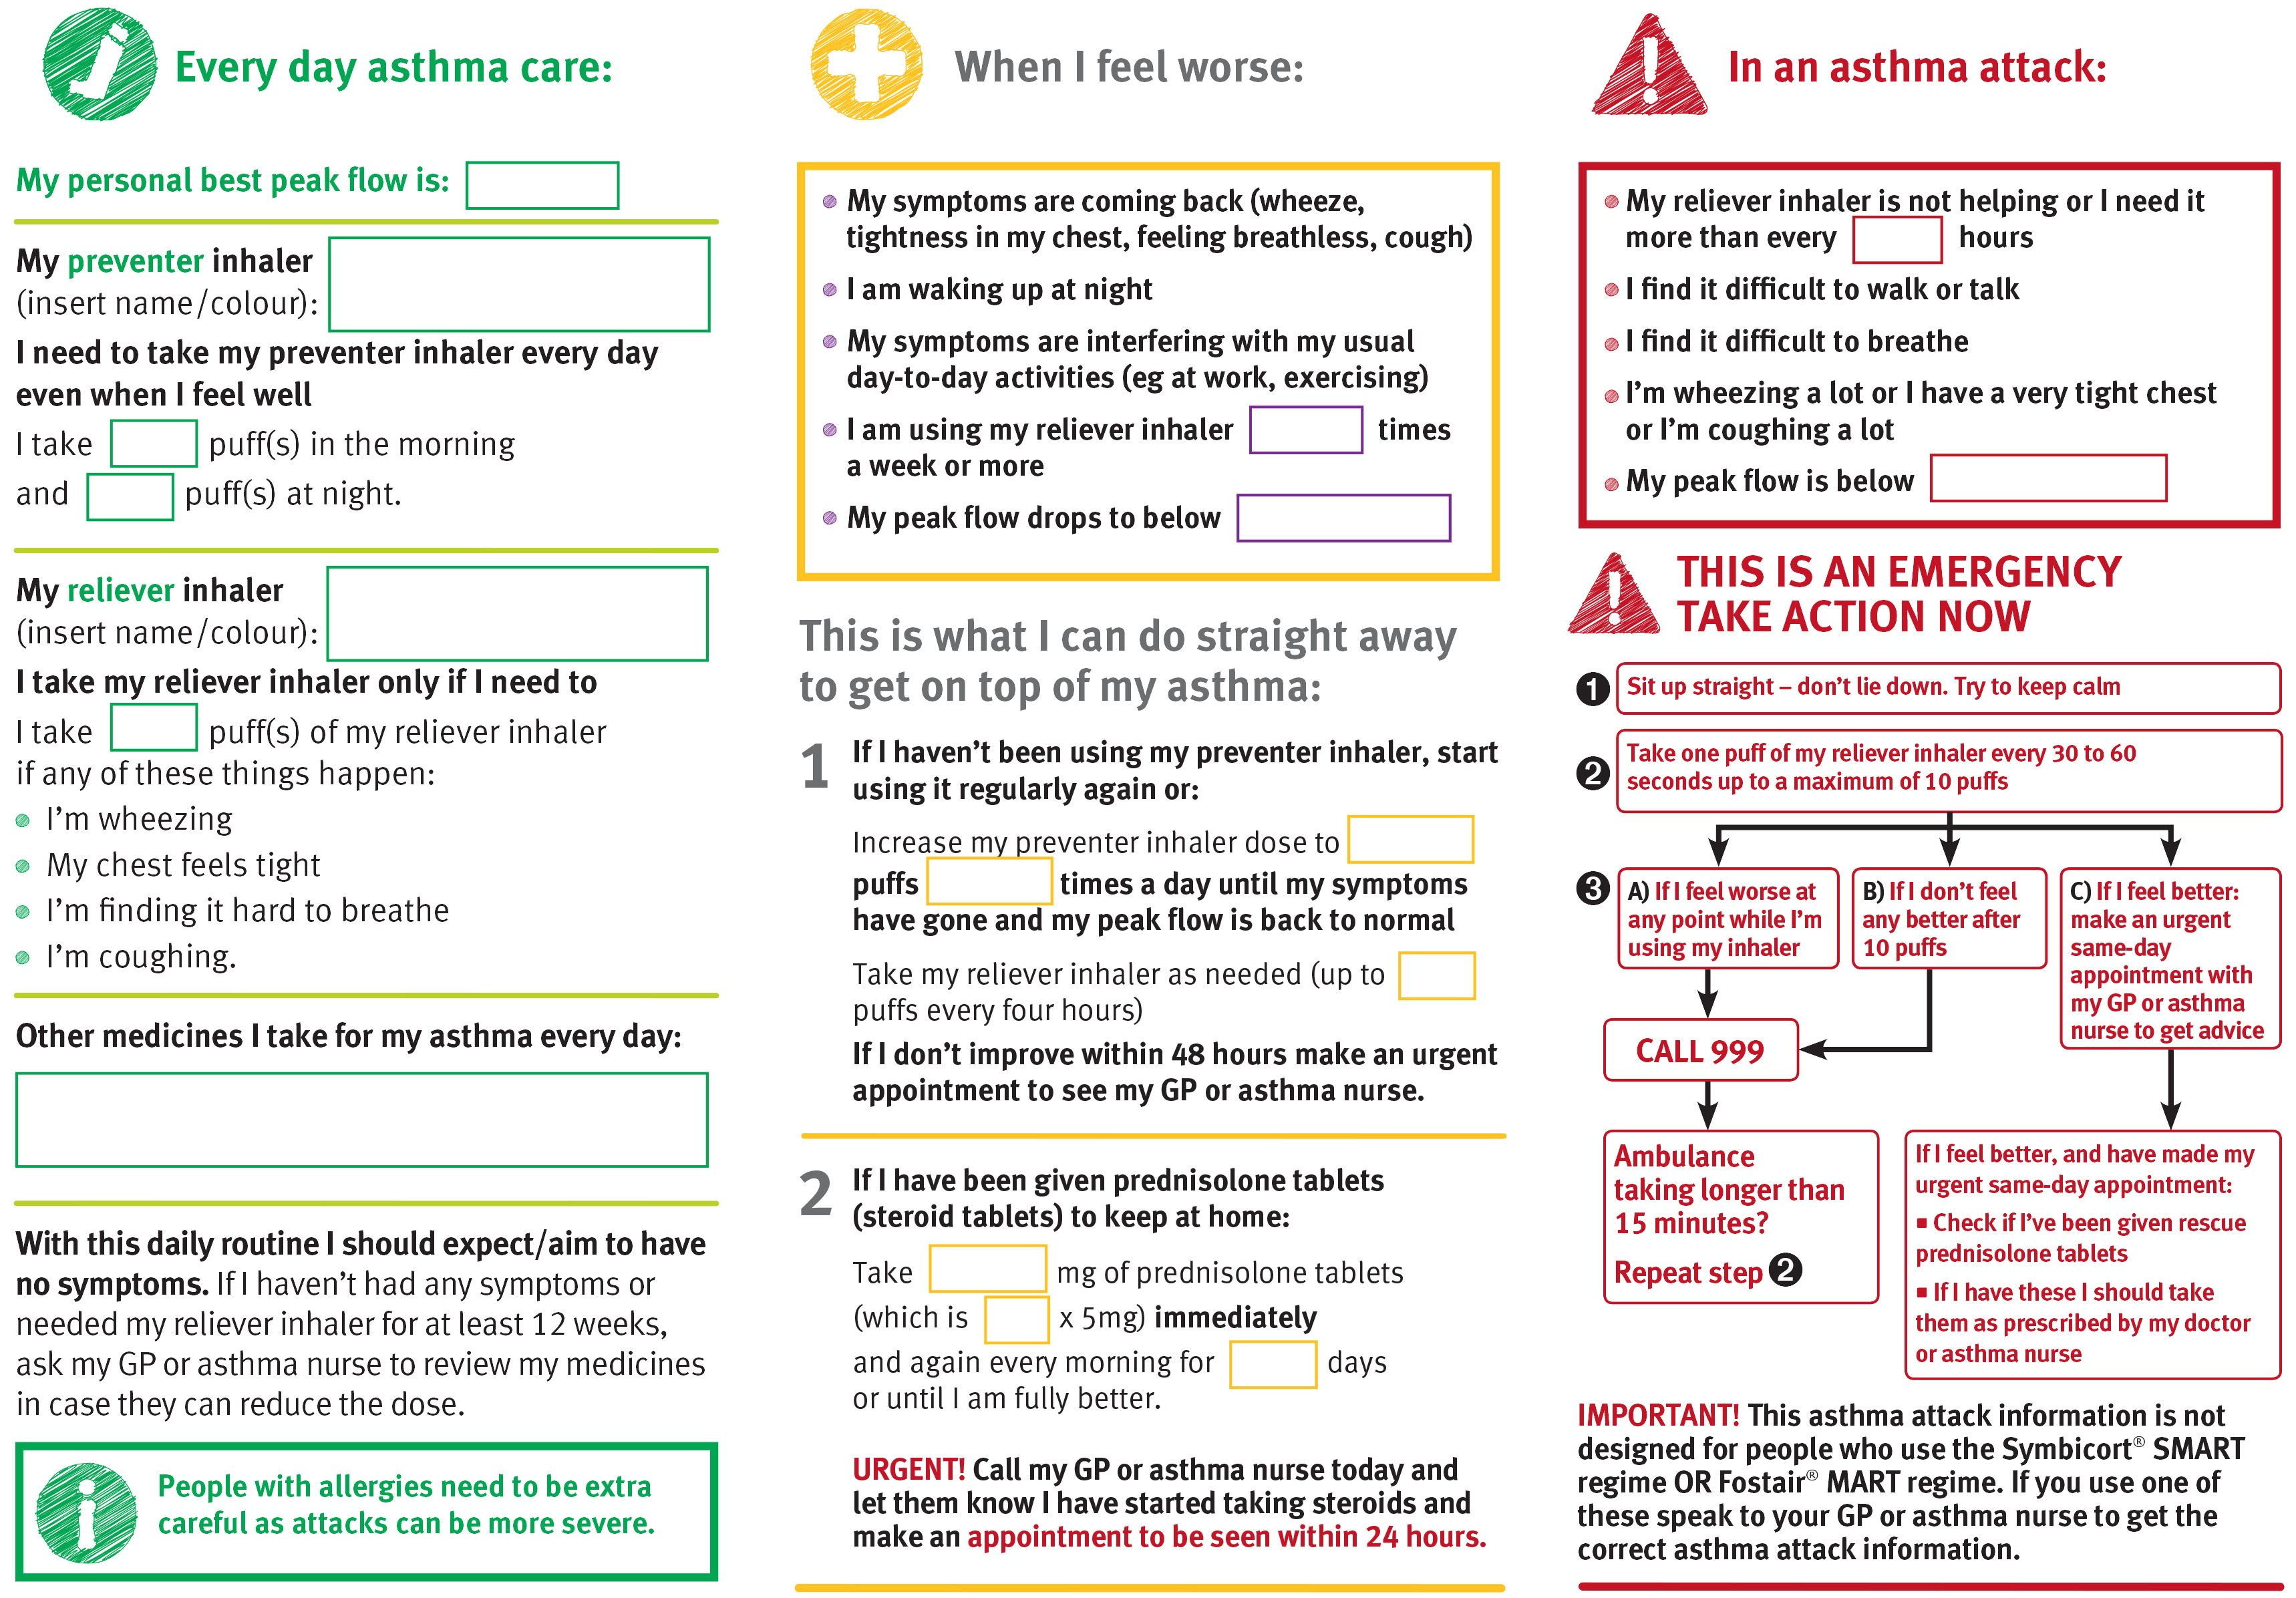 Written Adult Asthma Action Plan - close-up